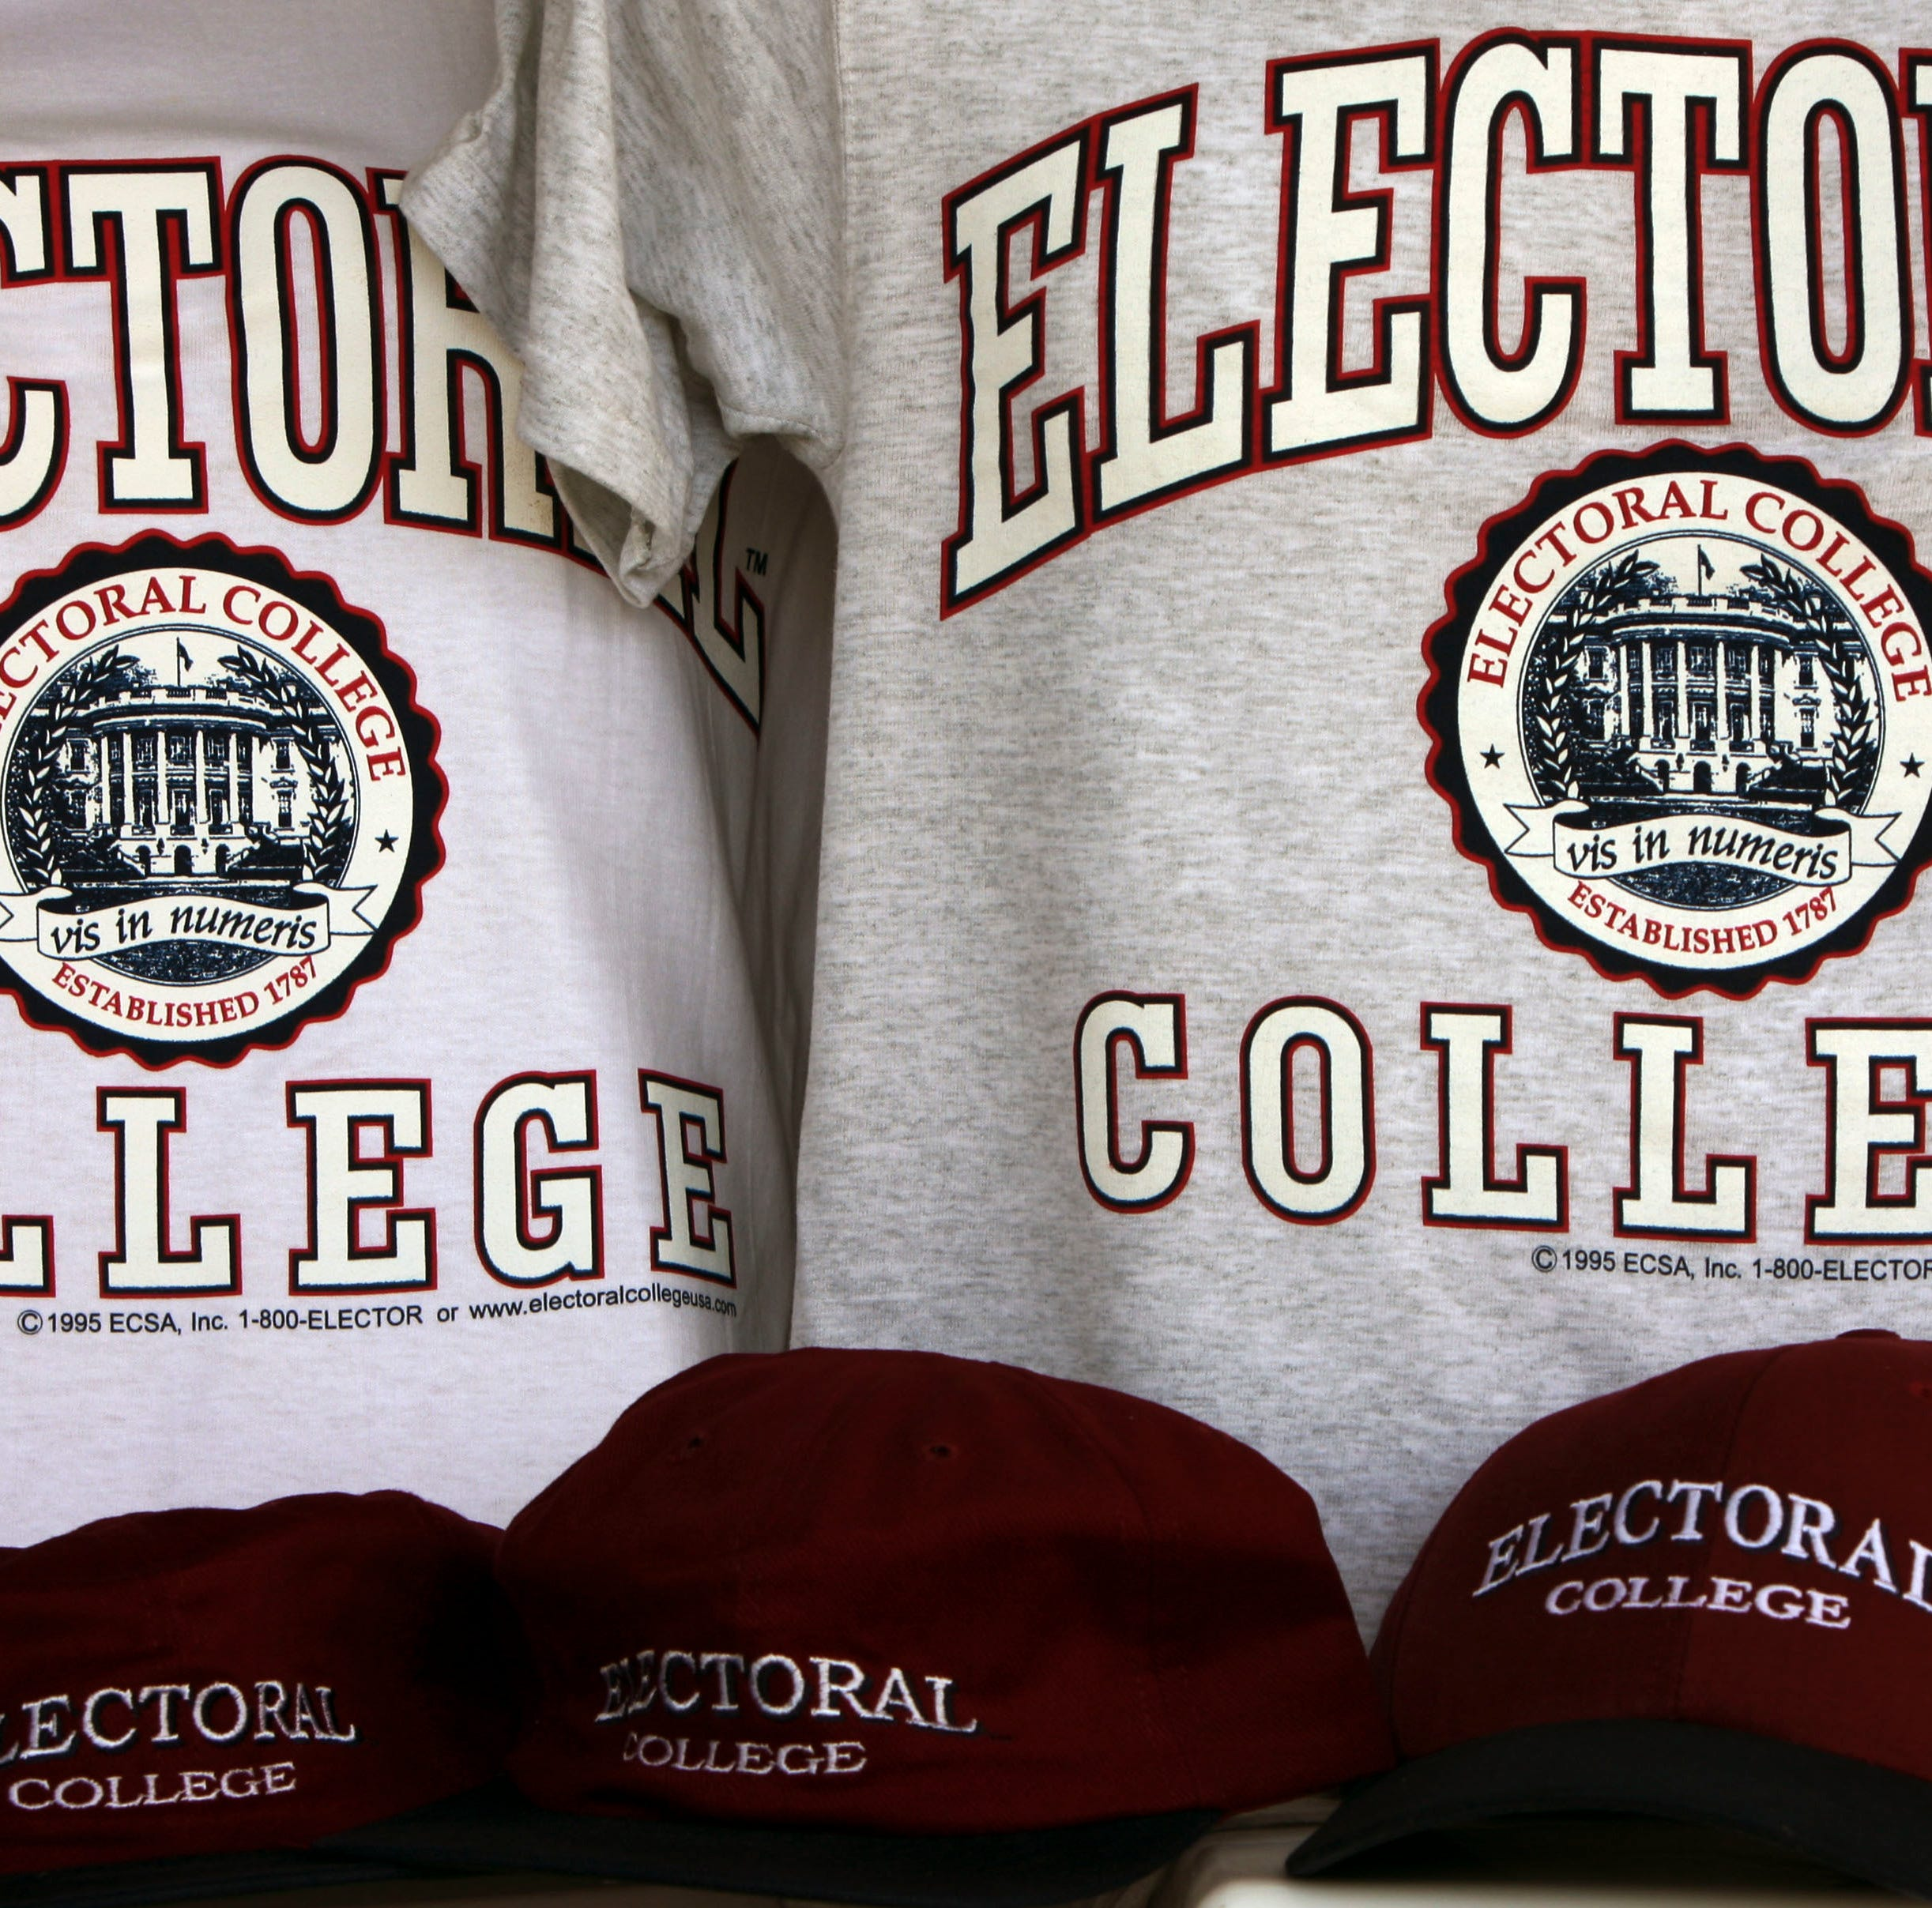 Electoral College debate: Do conservatives really think they can't win?